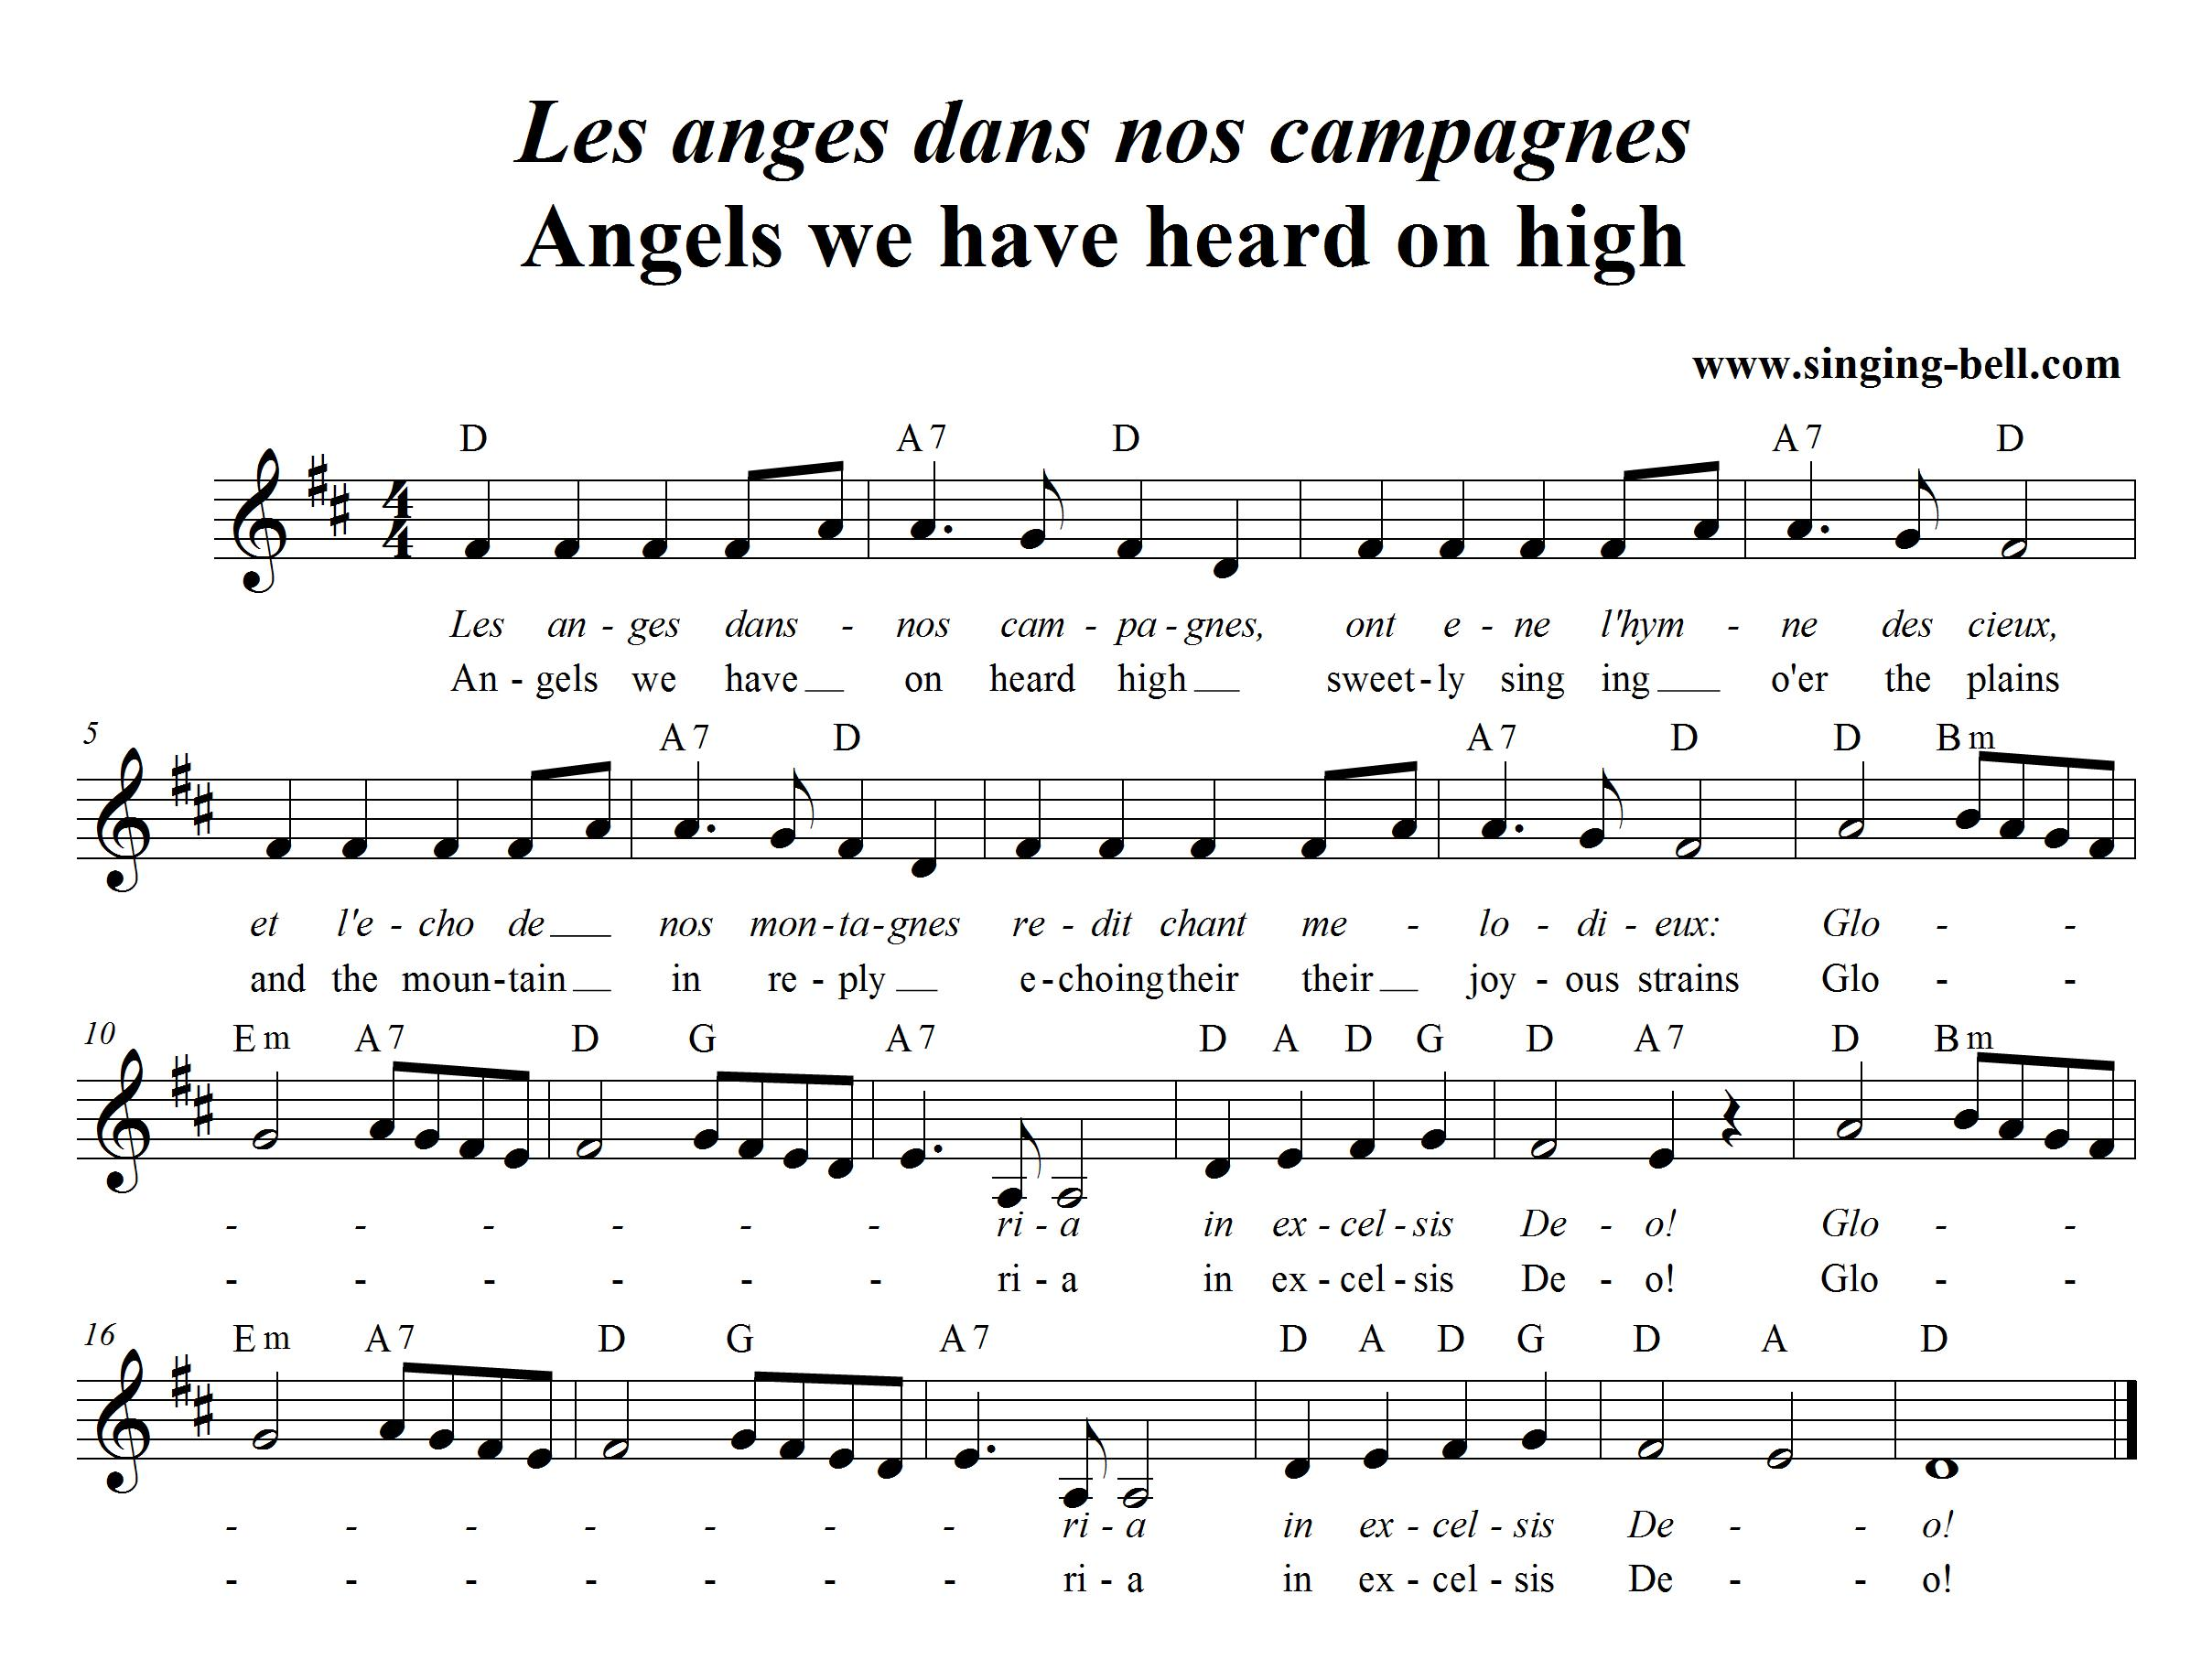 Free Christmas Carols > Angels we have heard on high (Les anges dans nos campagnes) - free mp3 ...